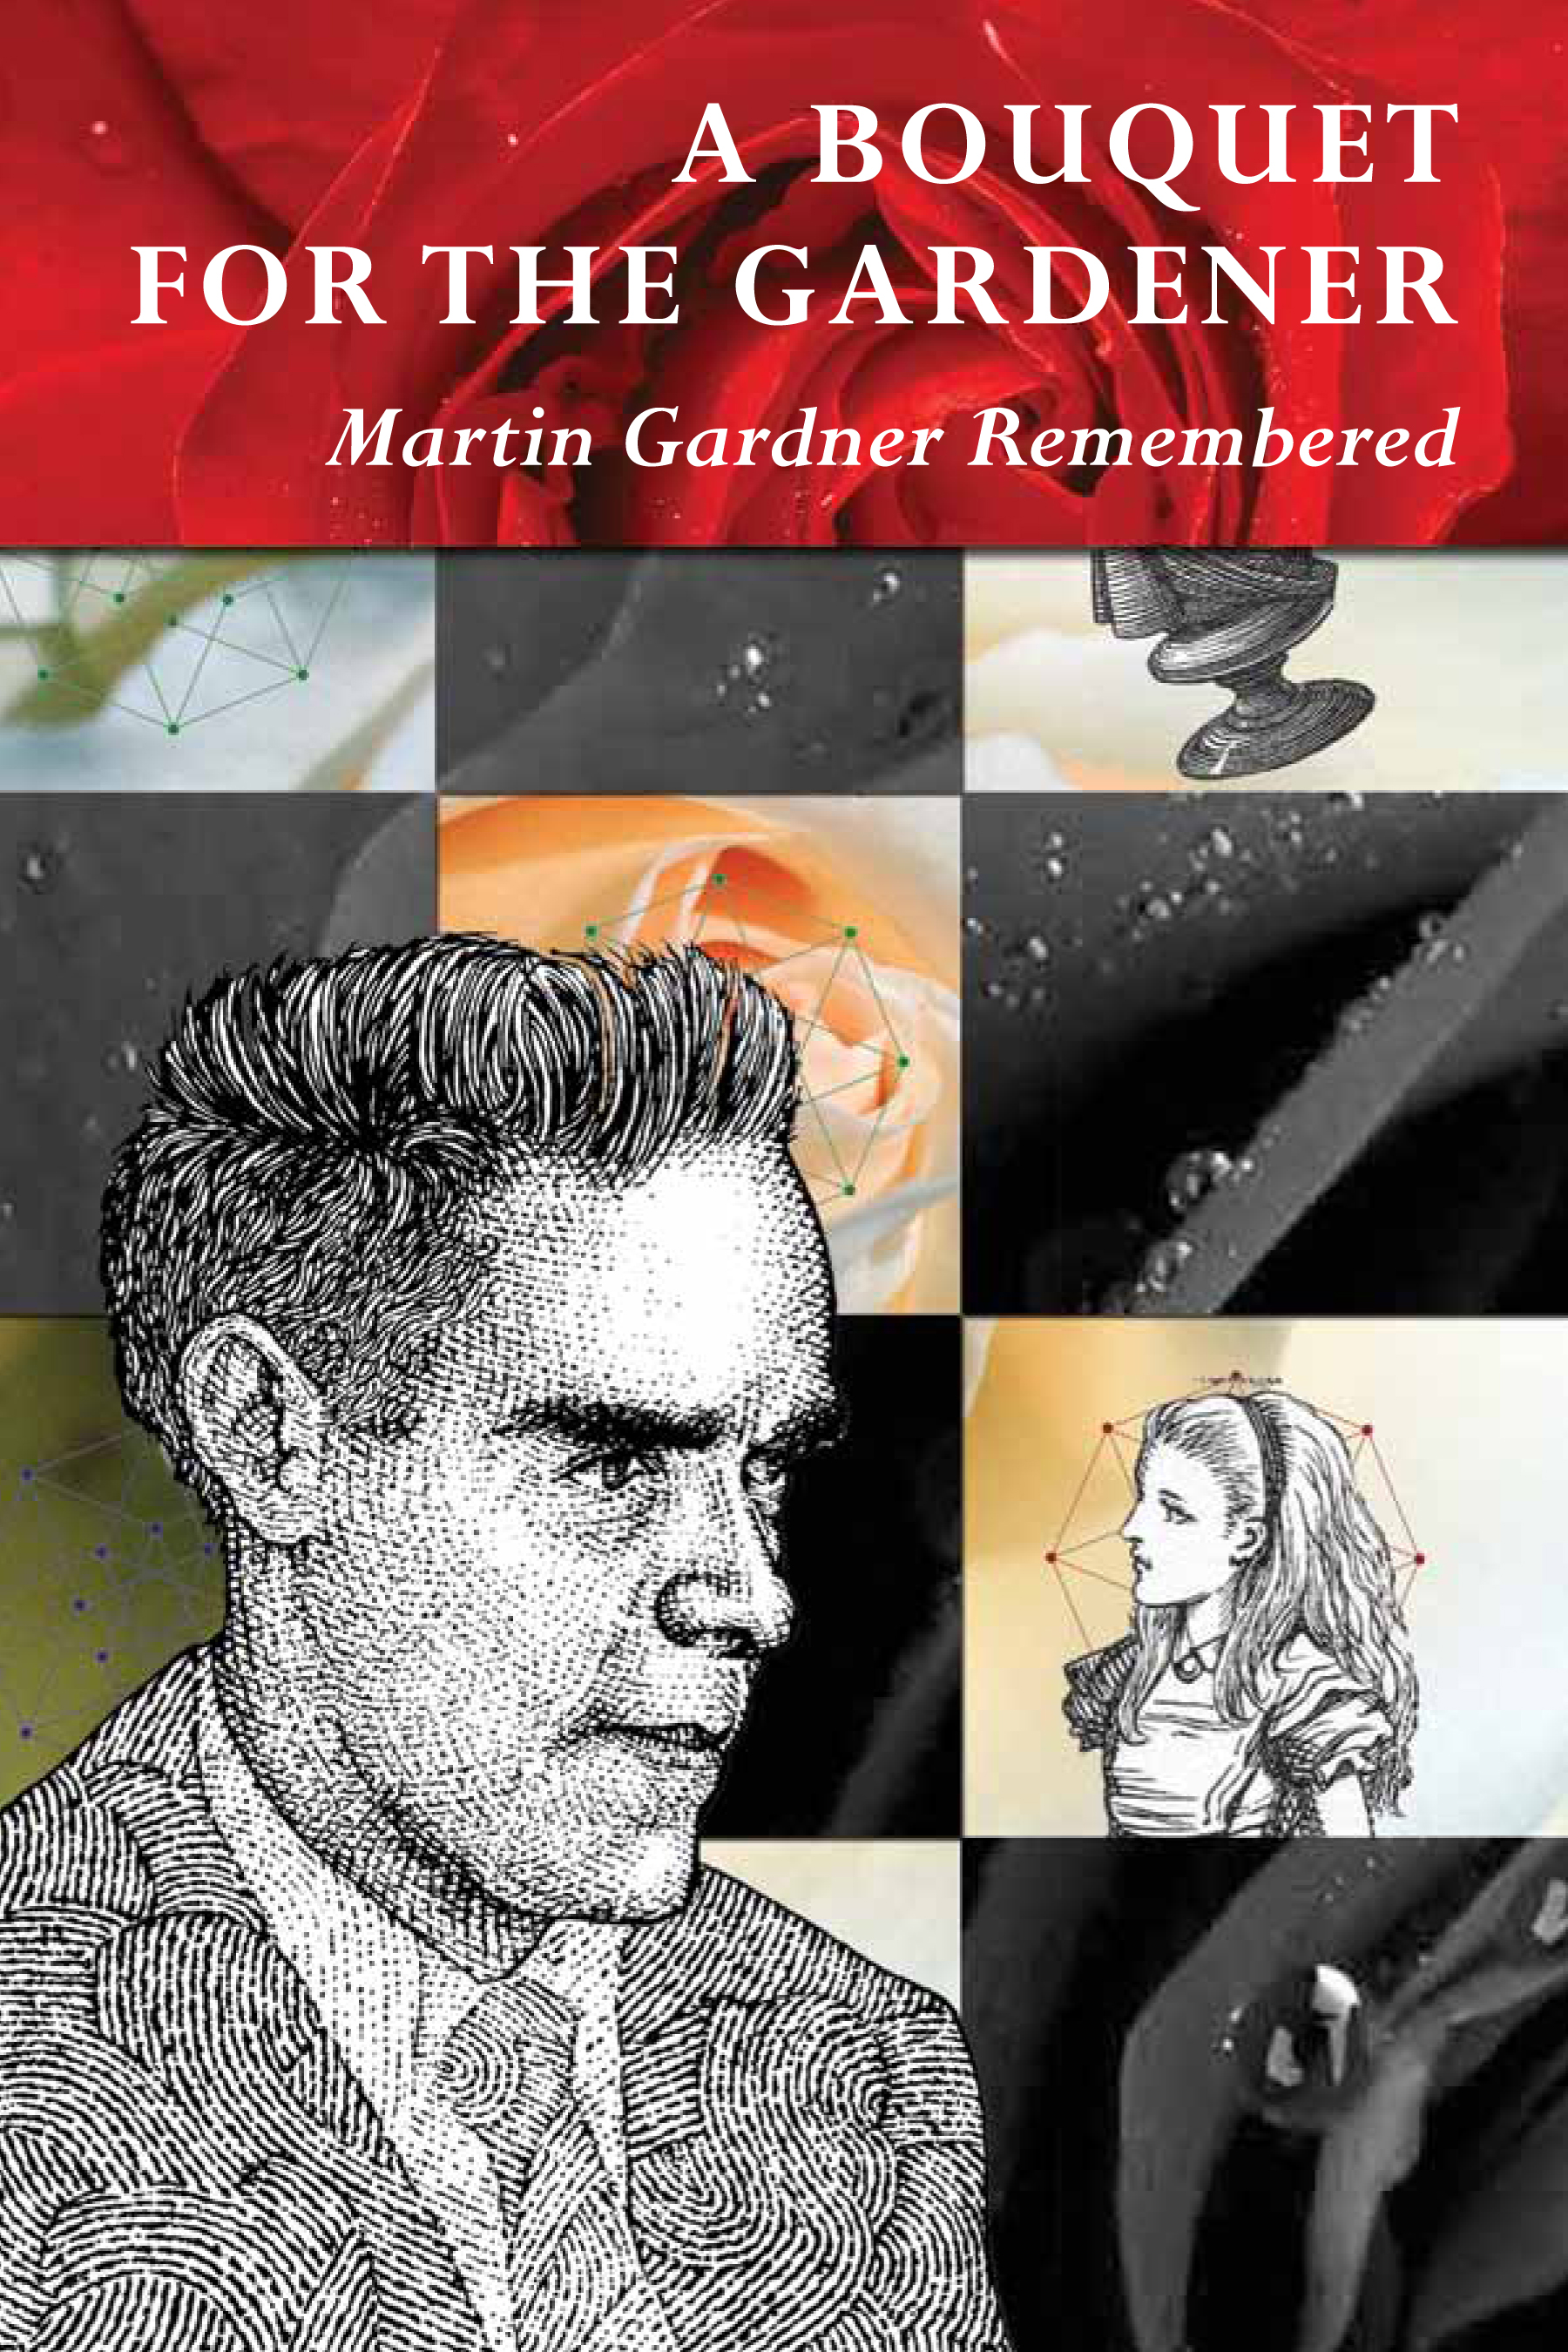 New LCSNA Martin Gardner Tribute Book Just Released!